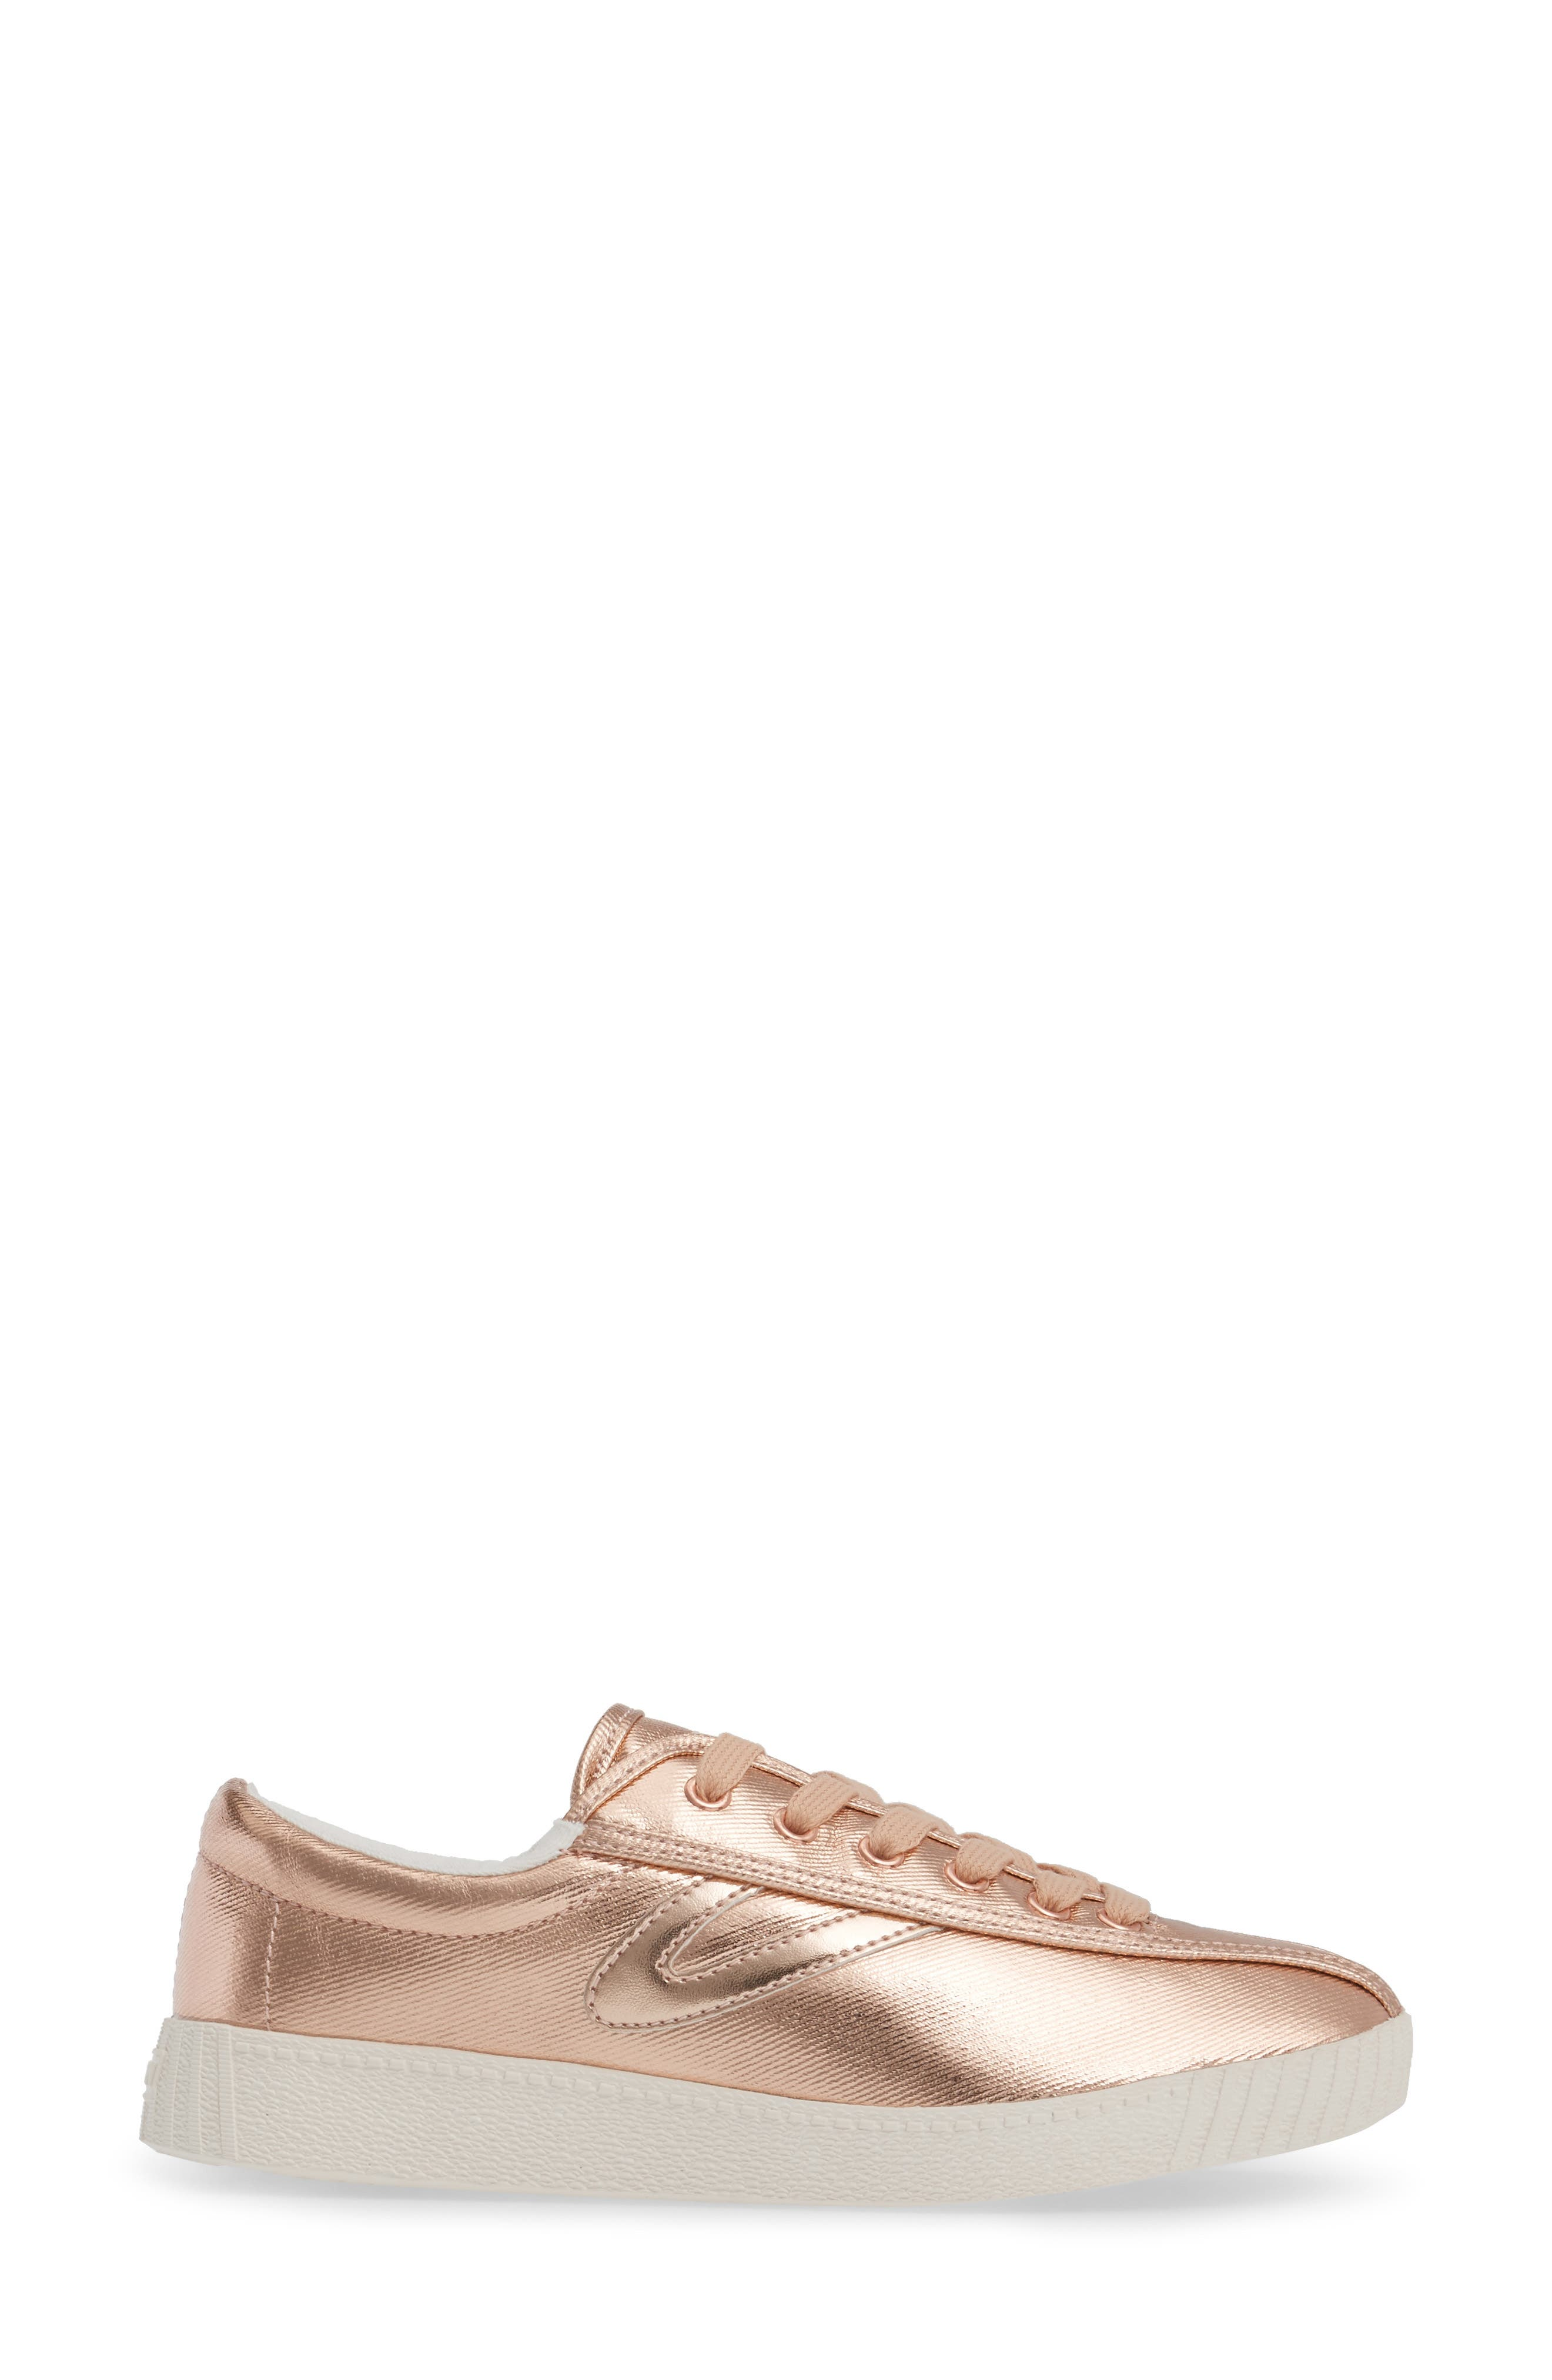 Nylite Plus Sneaker,                             Alternate thumbnail 3, color,                             Rose Gold/ Rose Gold